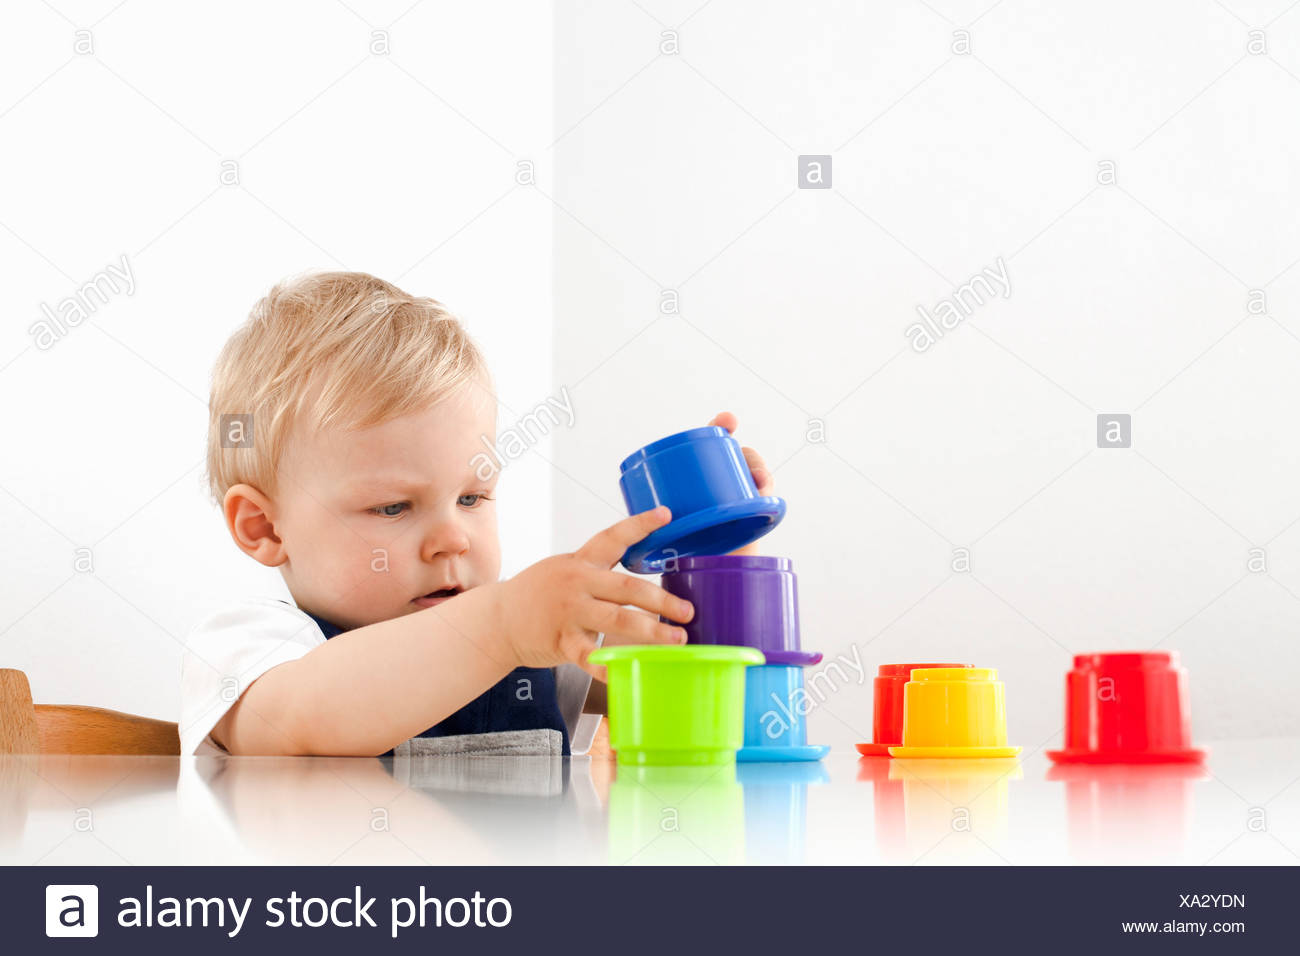 Little boy playing with stacking cups - Stock Image